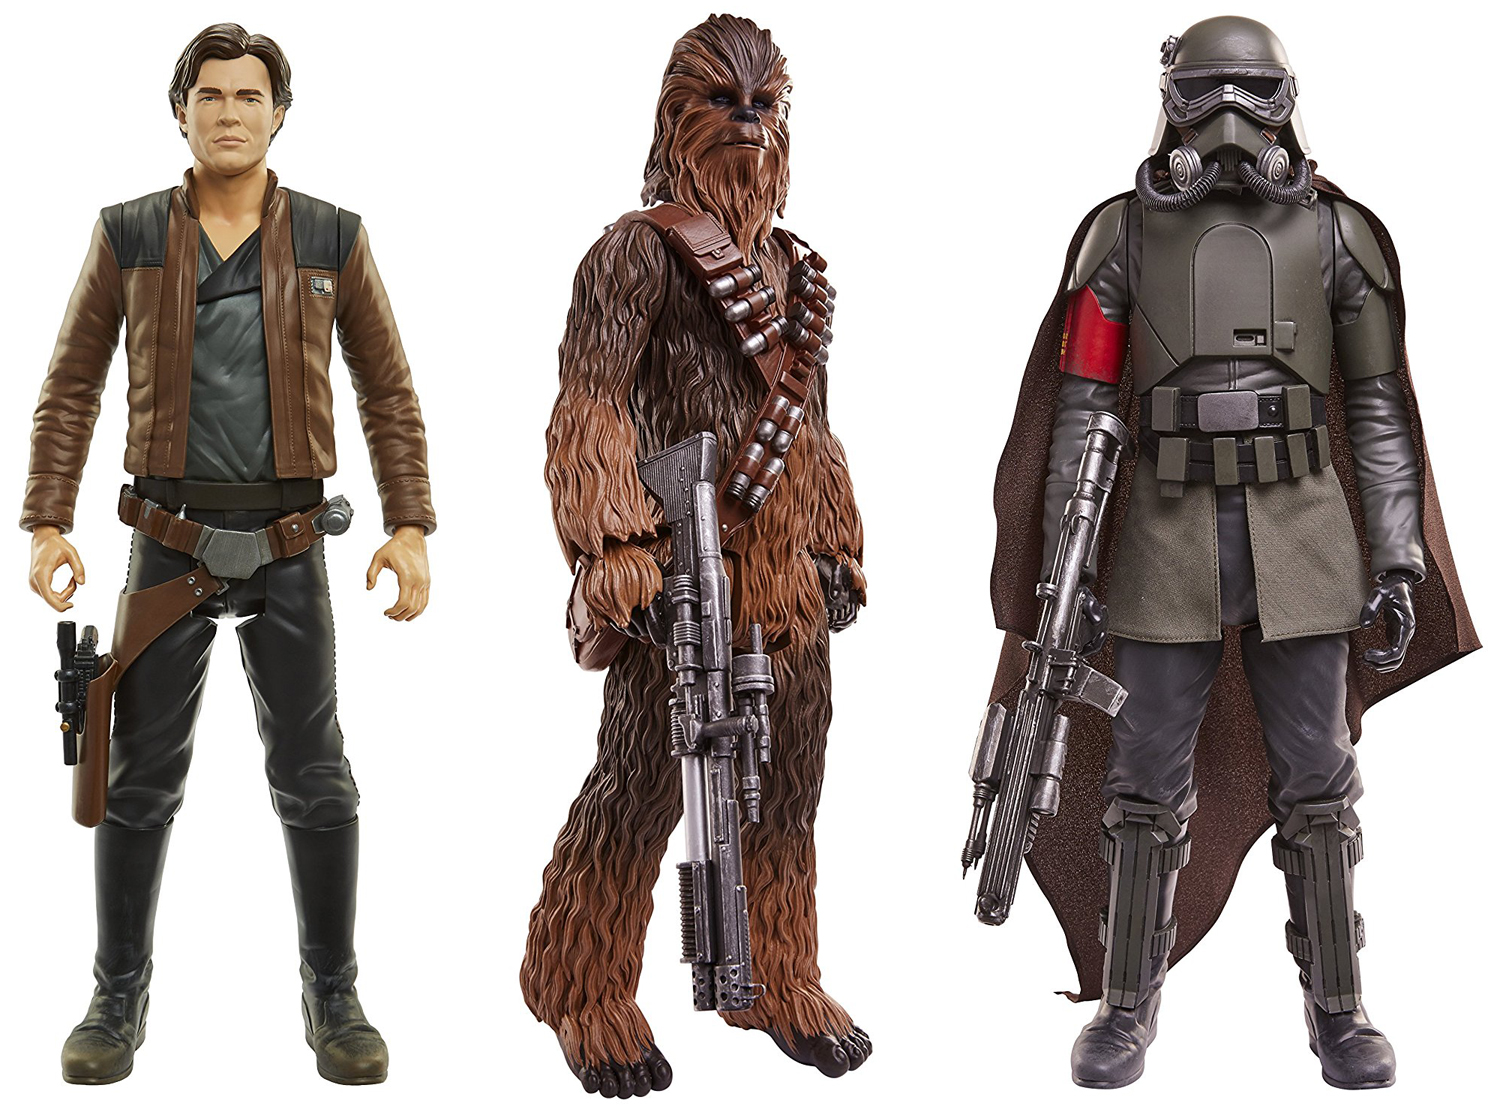 star-wars-solo-jakks-20-inch-action-figures